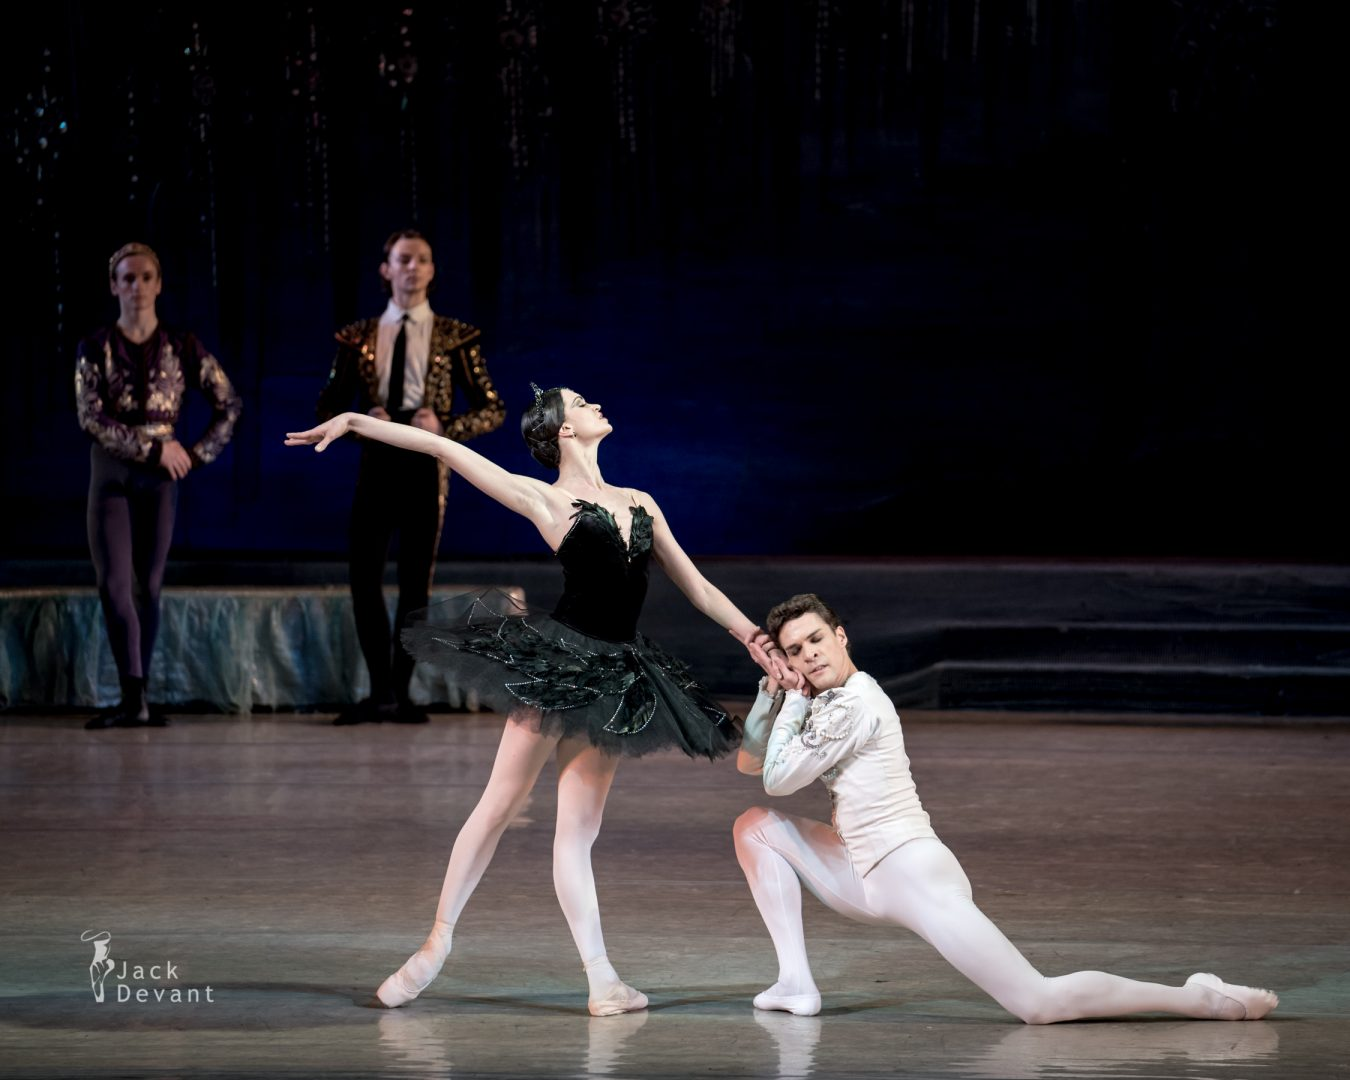 Swan Lake in Kiev, Anastasiya Shevchenko and Denys Nedak PDD final pose